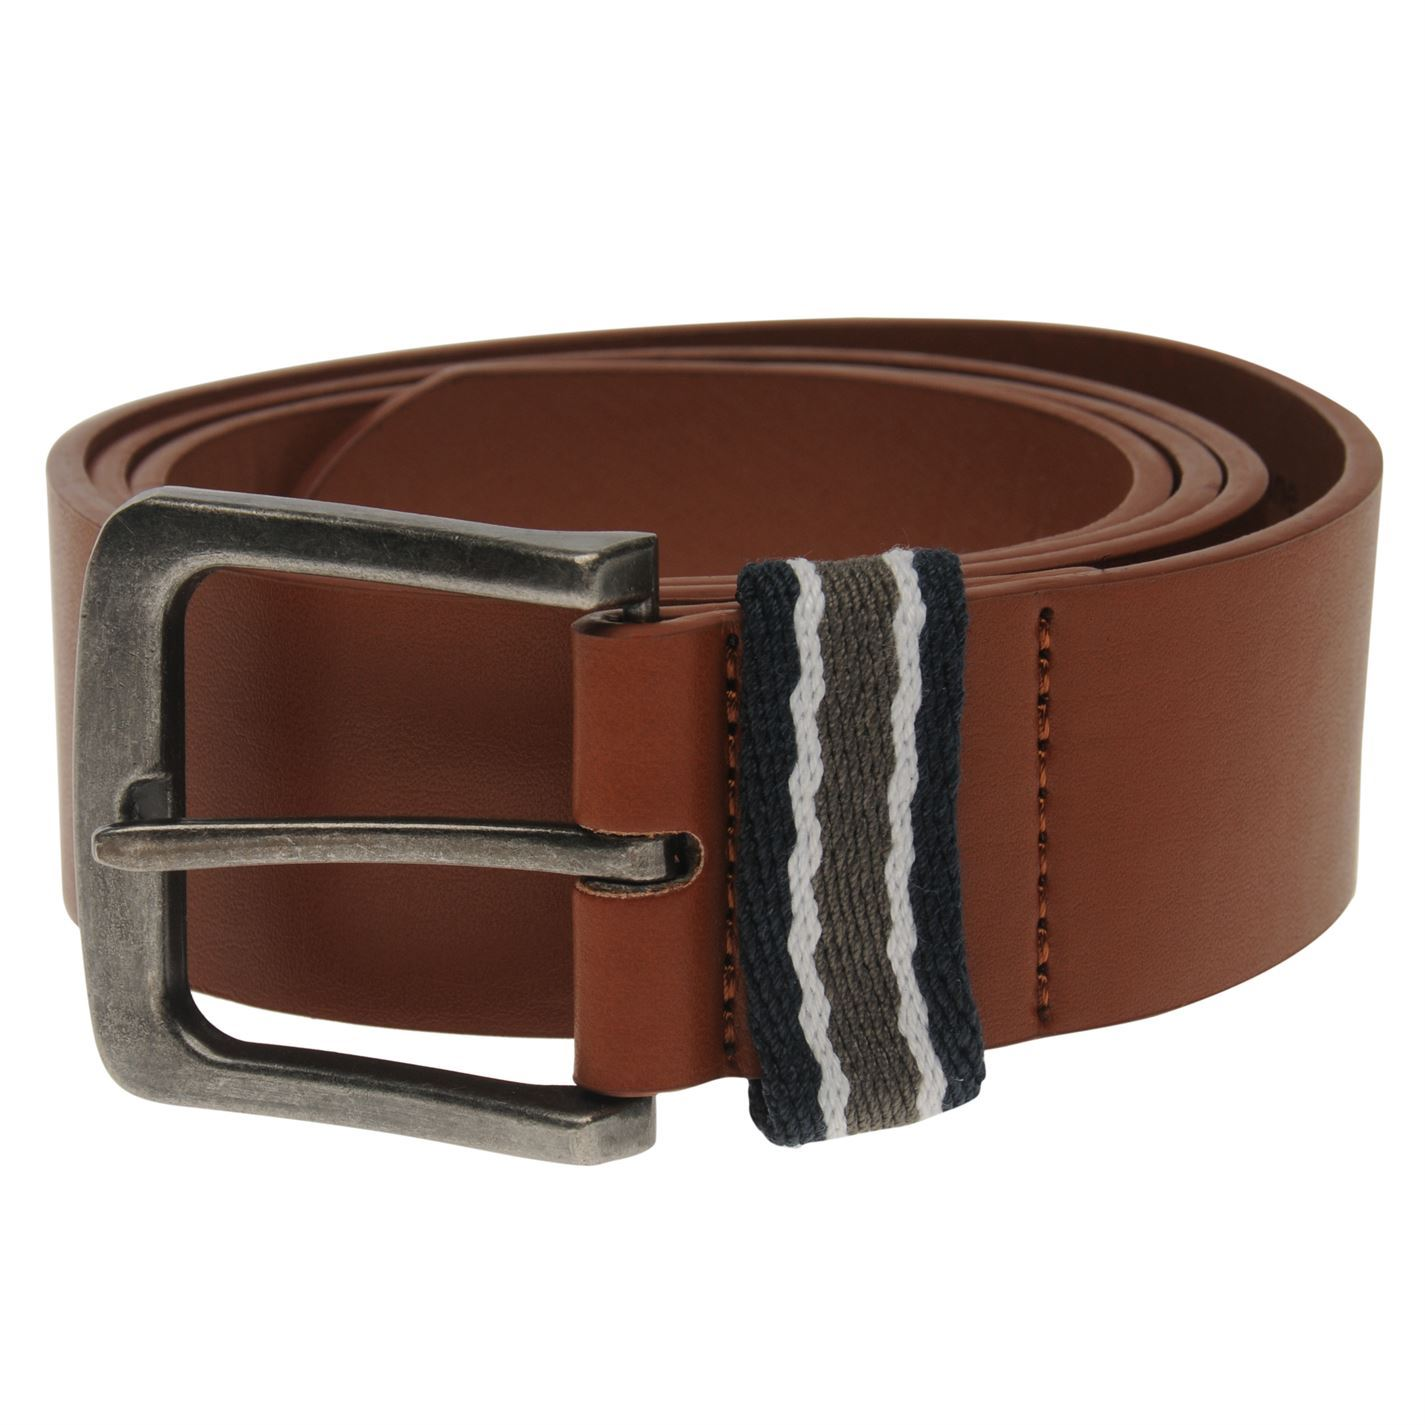 002ee4abc3f1 SoulCal Front Loop Belt Mens The SoulCal Front Loop Belt is designed with a  durable PU leather